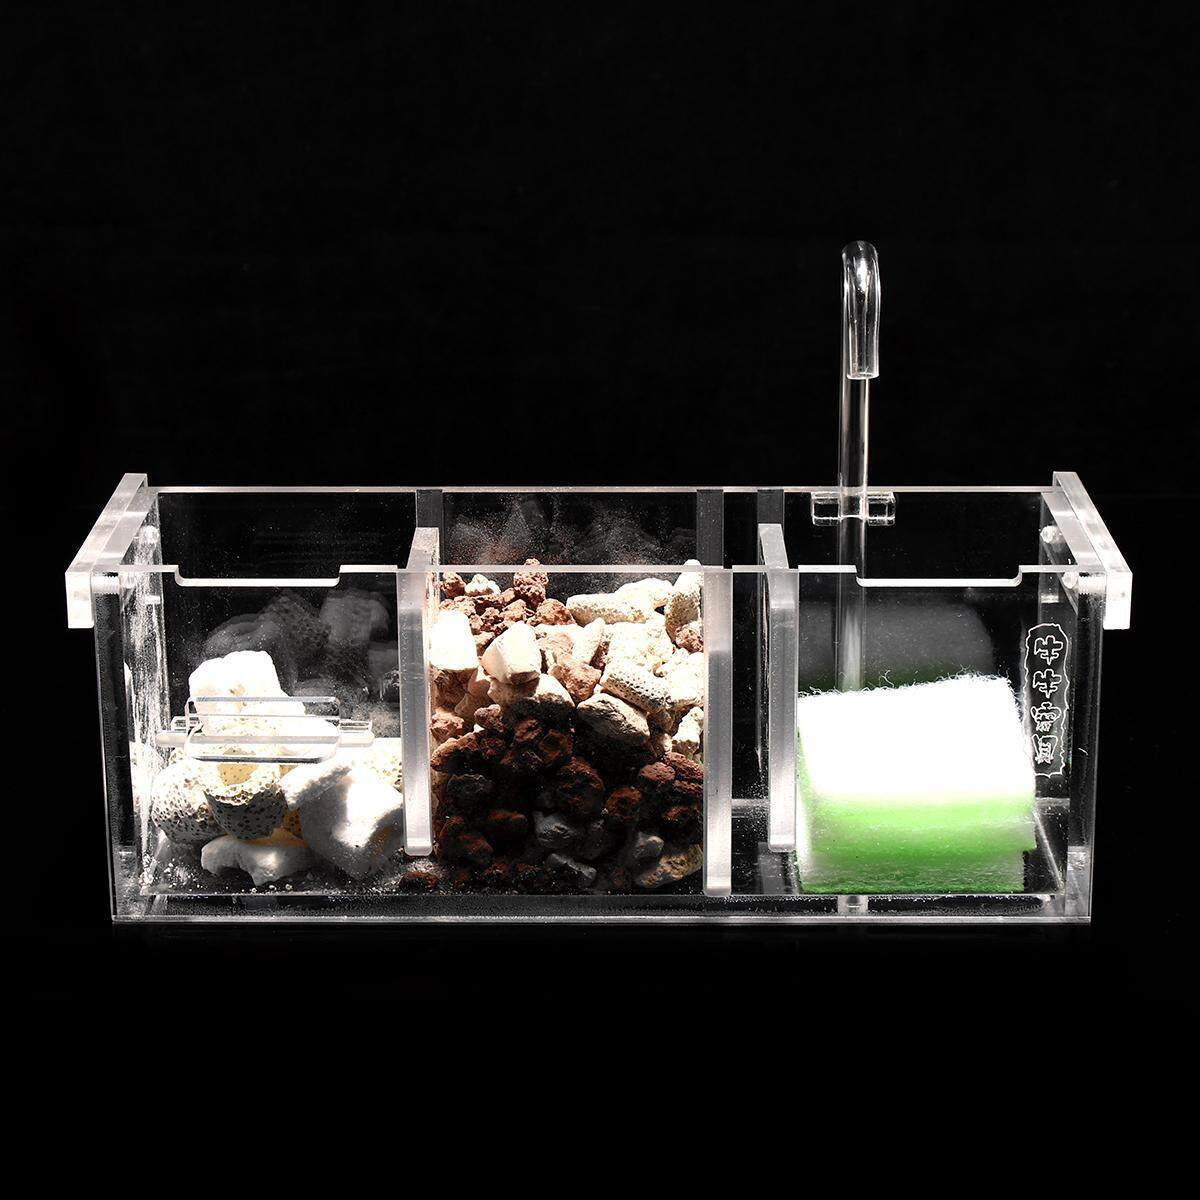 Acrylic Aquarium Fish Tank External Hang On Filter Box With Water Pump  3 Grids By Moonbeam.